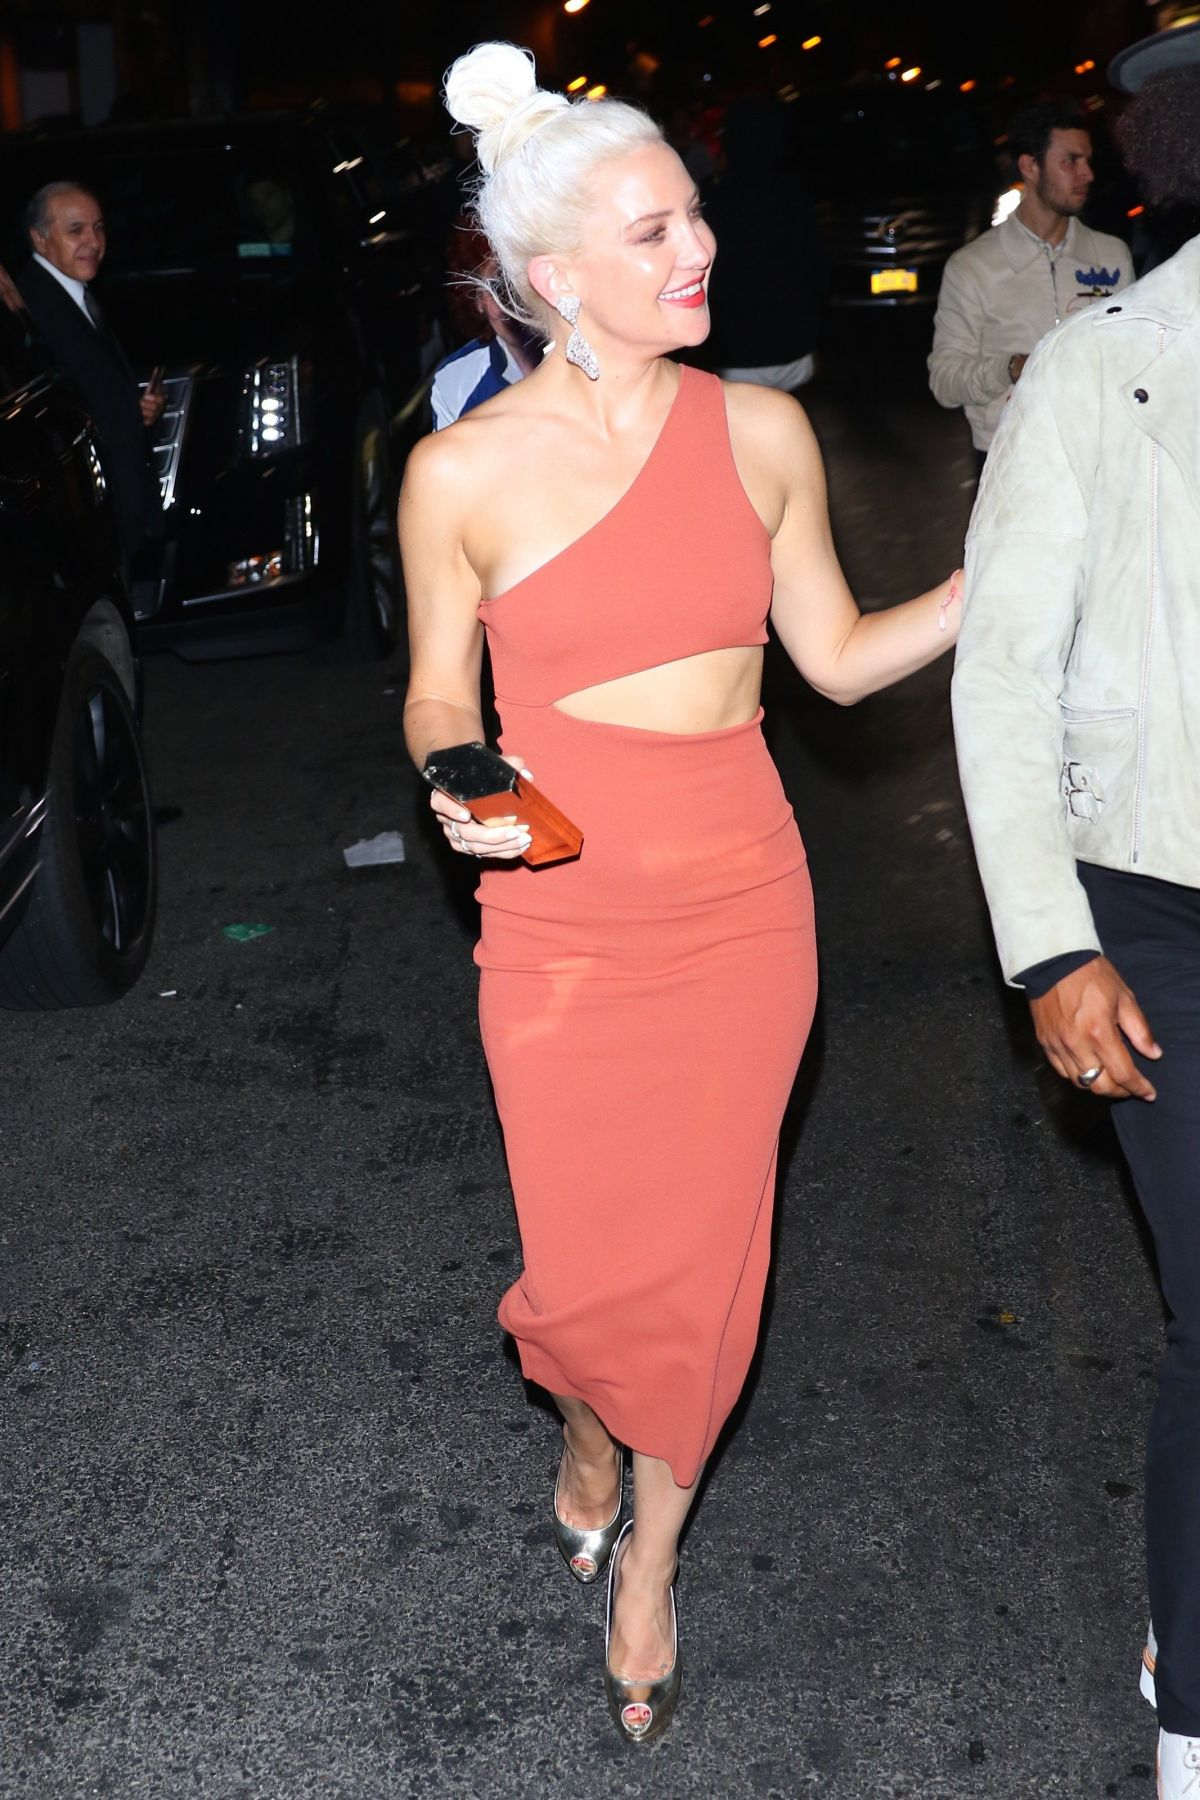 Kate Hudson At the 1Oak Nightclub for Met Gala After Party in New York City   kate-hudson-at-the-1oak-nightclub-for-met-gala-after-party-in-new-york-city-_5